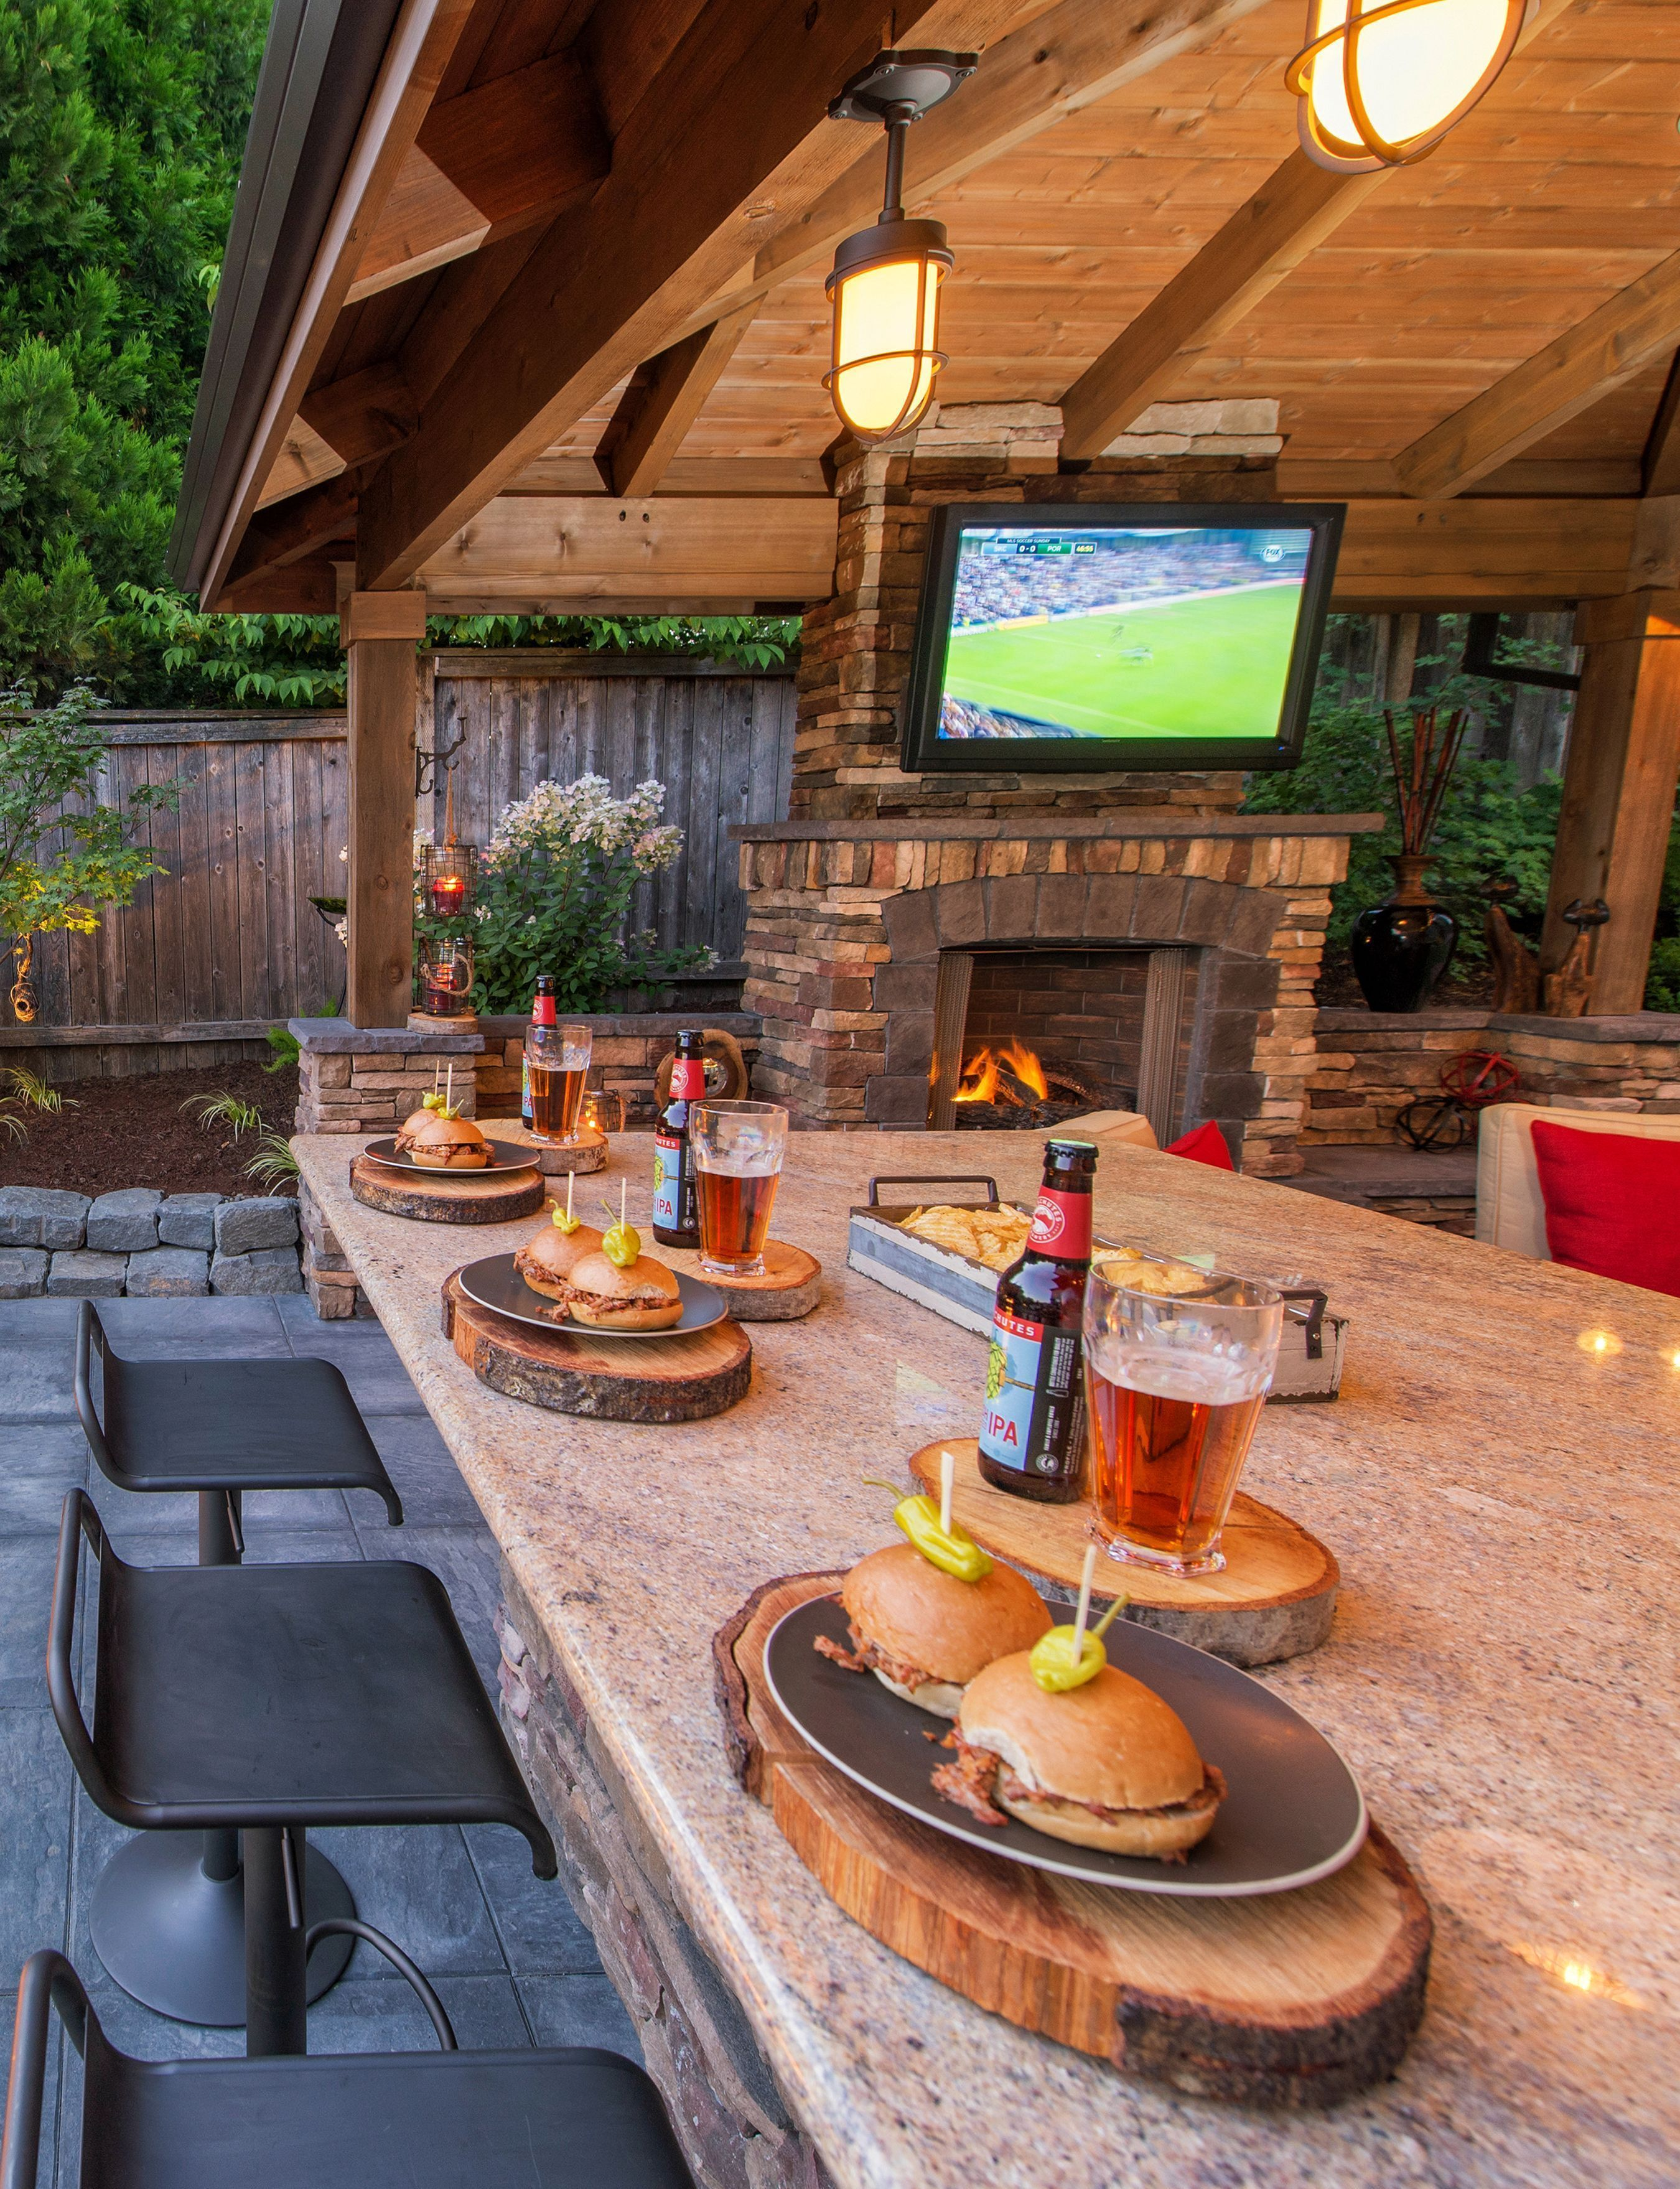 Get Outdoor Kitchen Ideas From Thousands Of Outdoor Kitchen Pictures Learn About Layout Options Outdoor Kitchen Outdoor Kitchen Patio Backyard Patio Designs